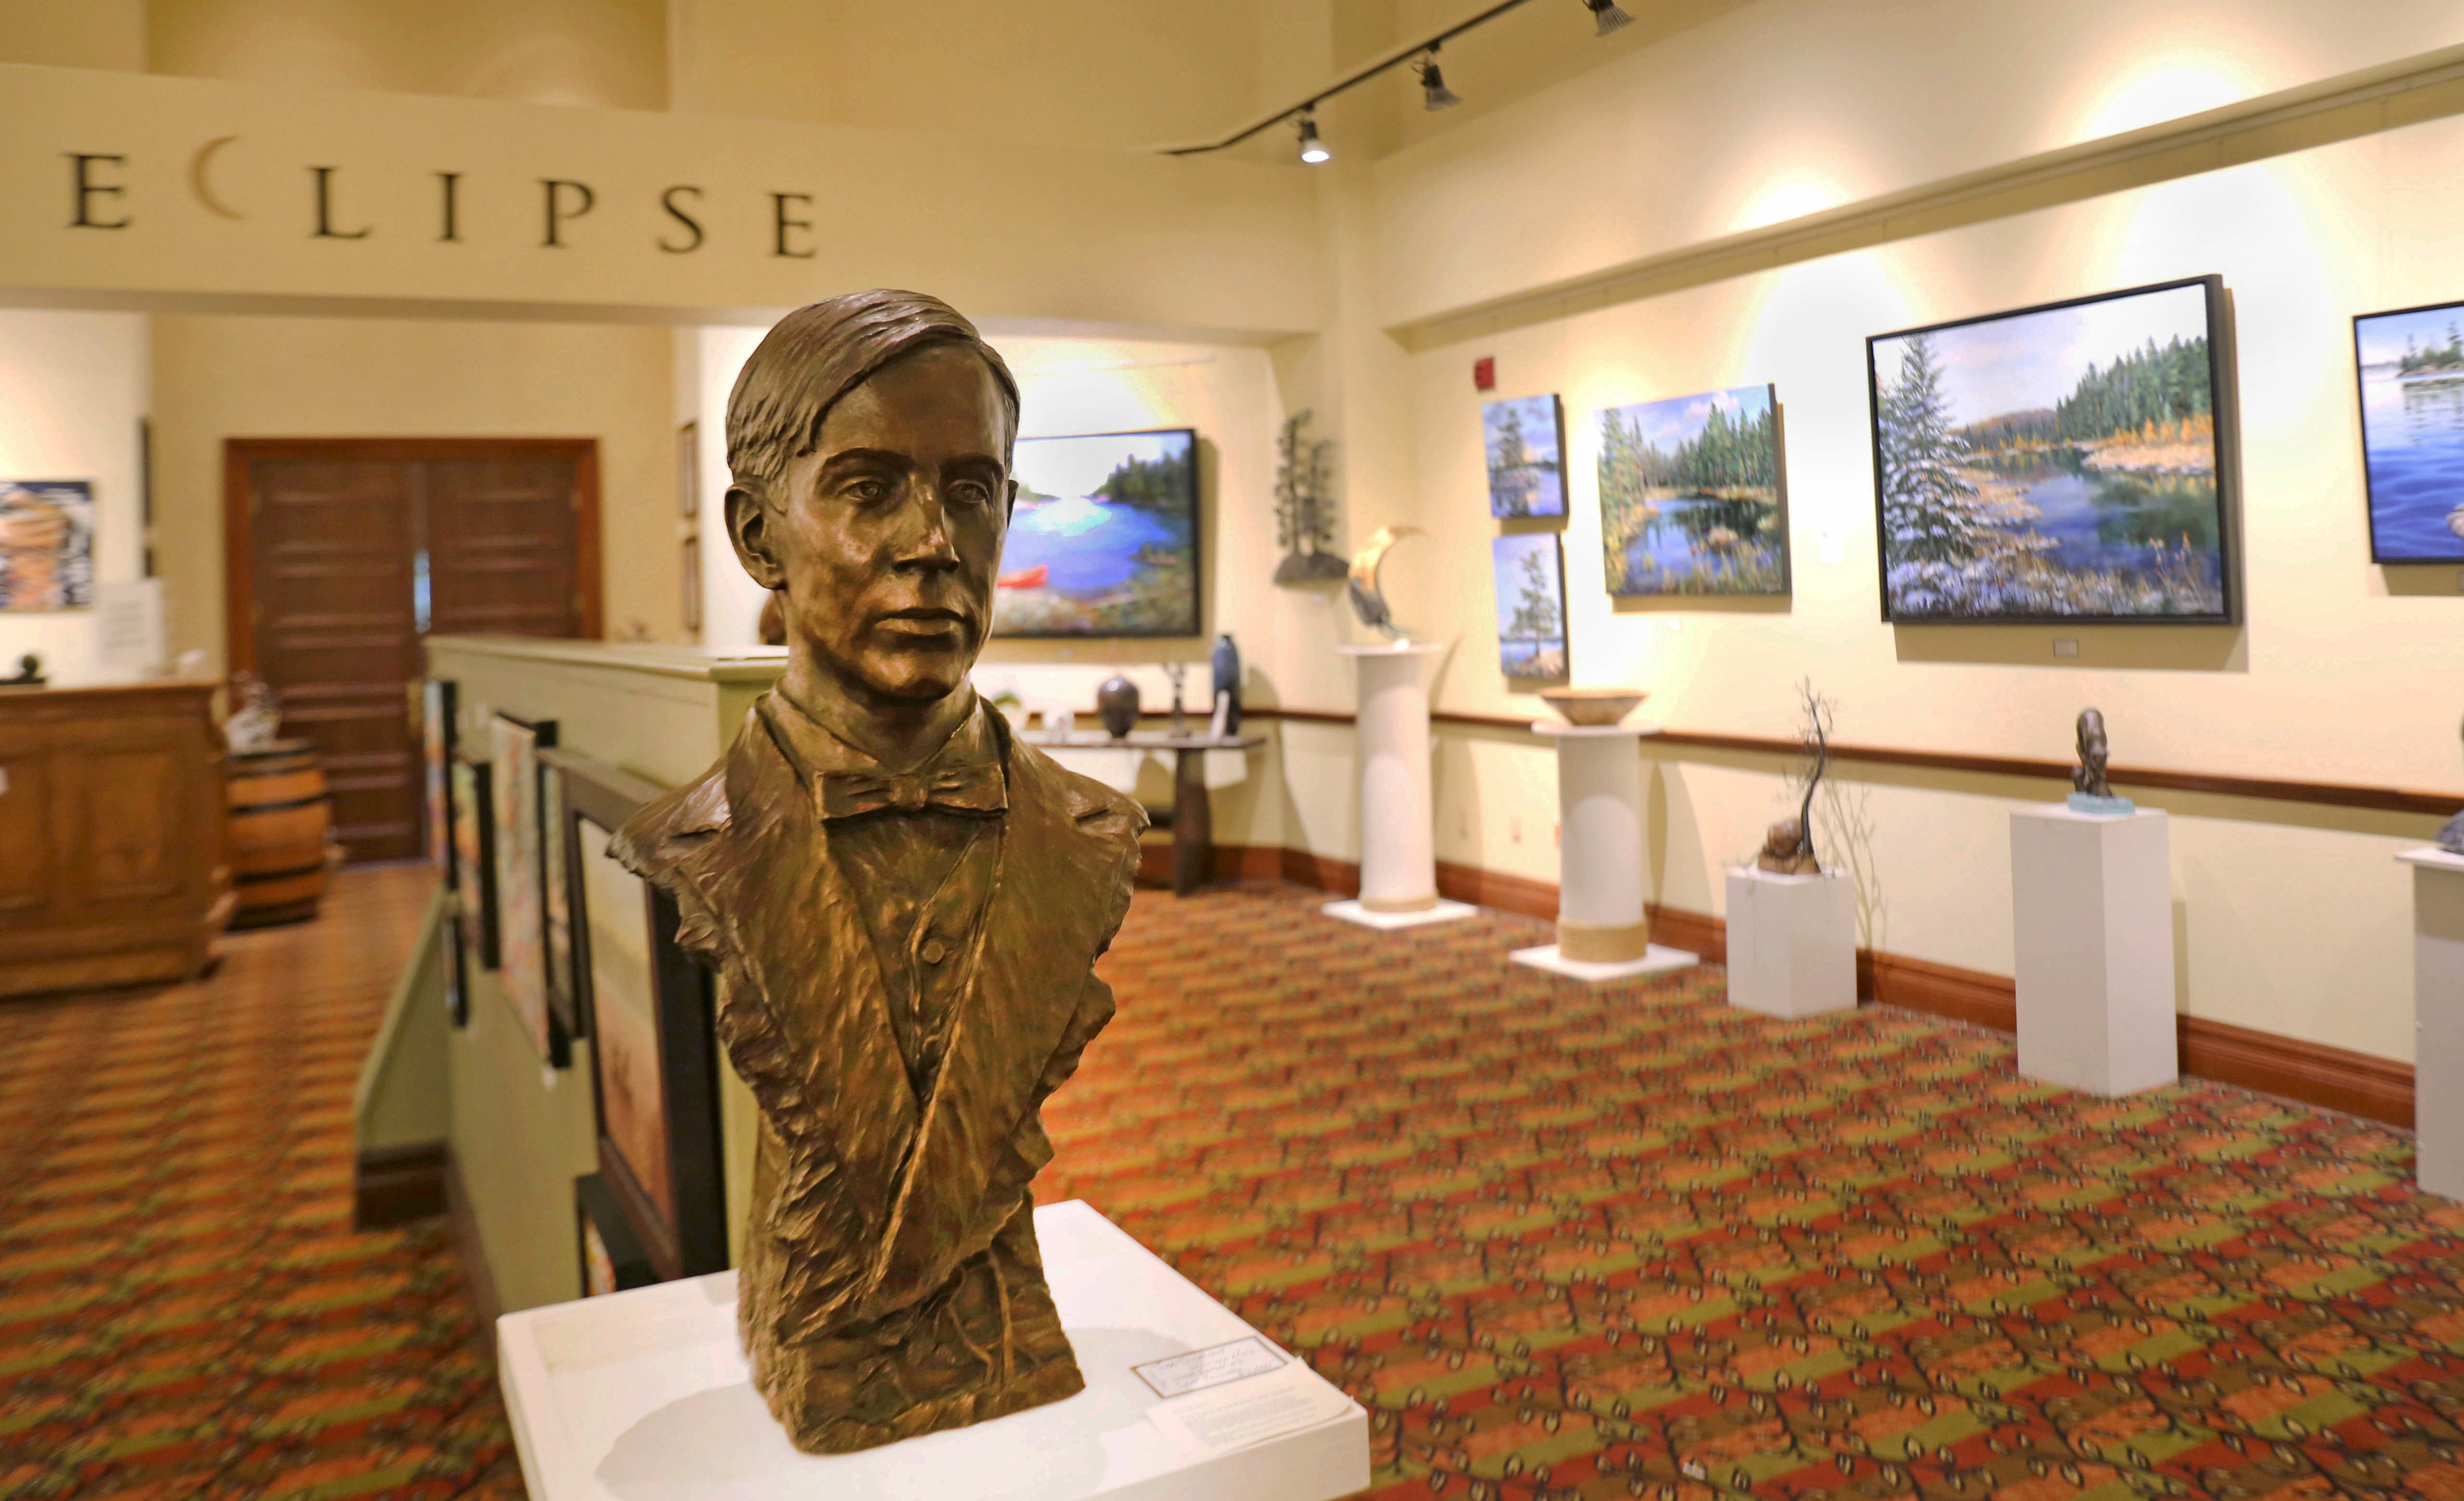 Tom Thomson sculpture greets visitors to Eclipse Art Gallery